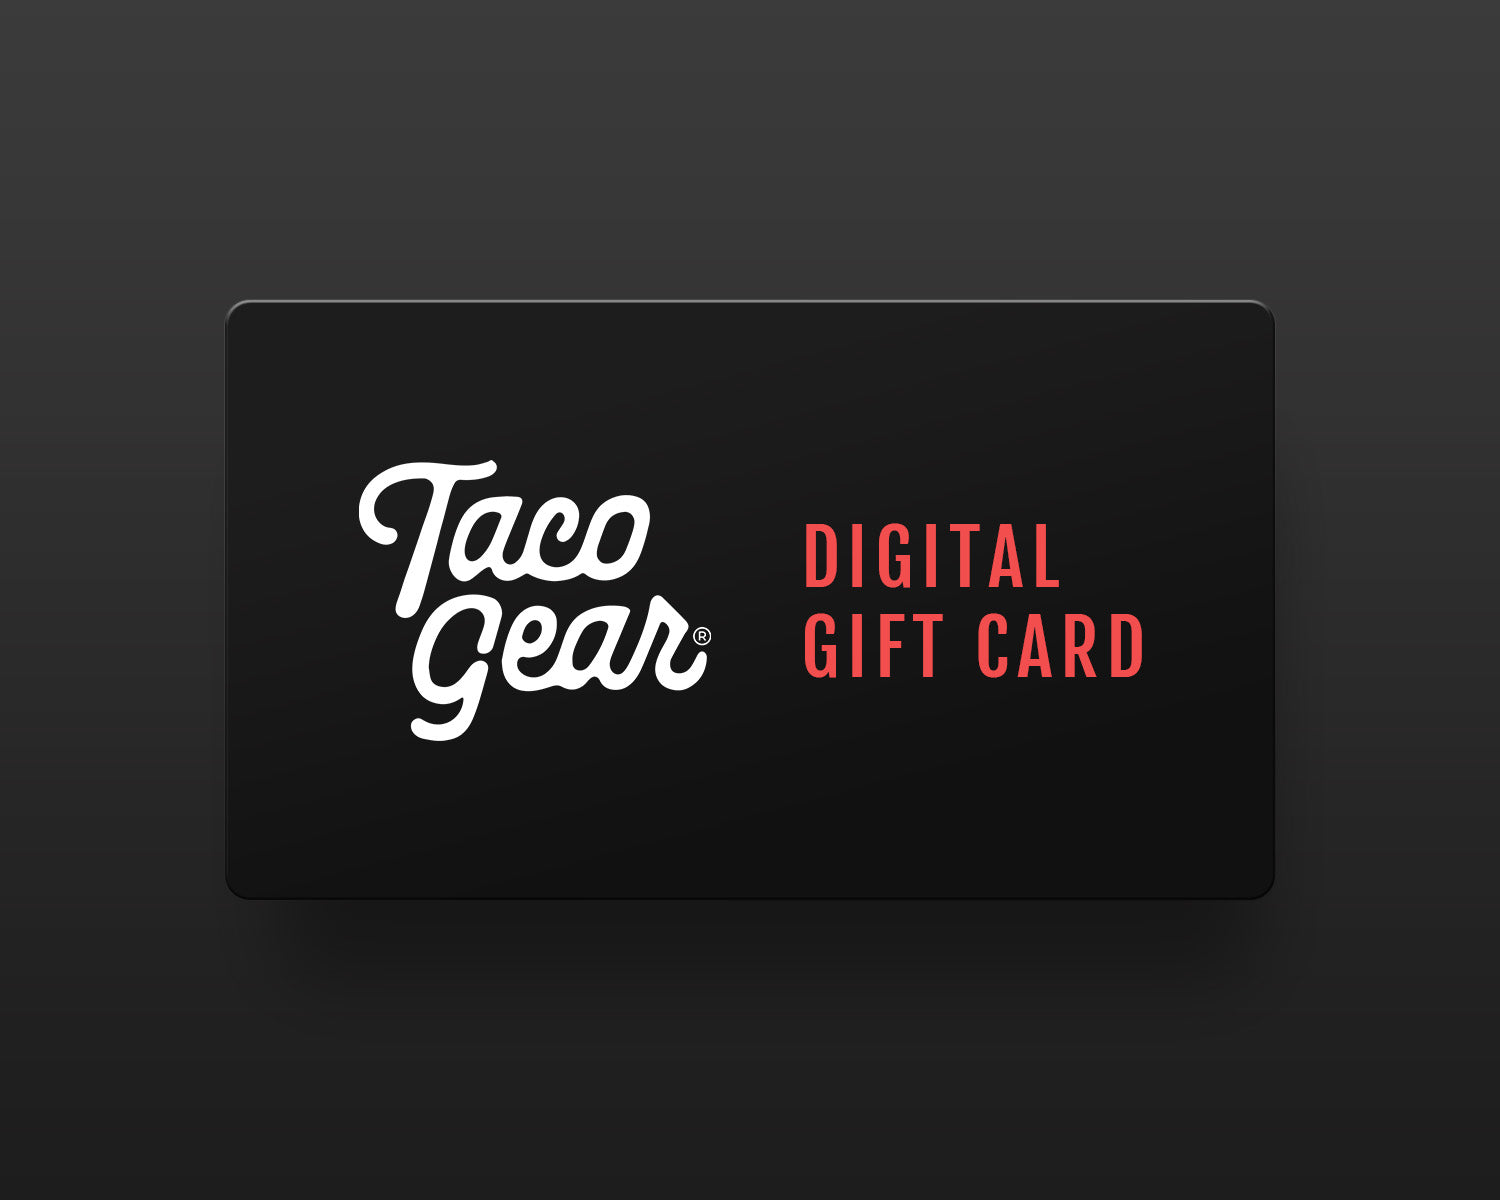 Taco Gear Gift Cards (Digital) - Taco Gear